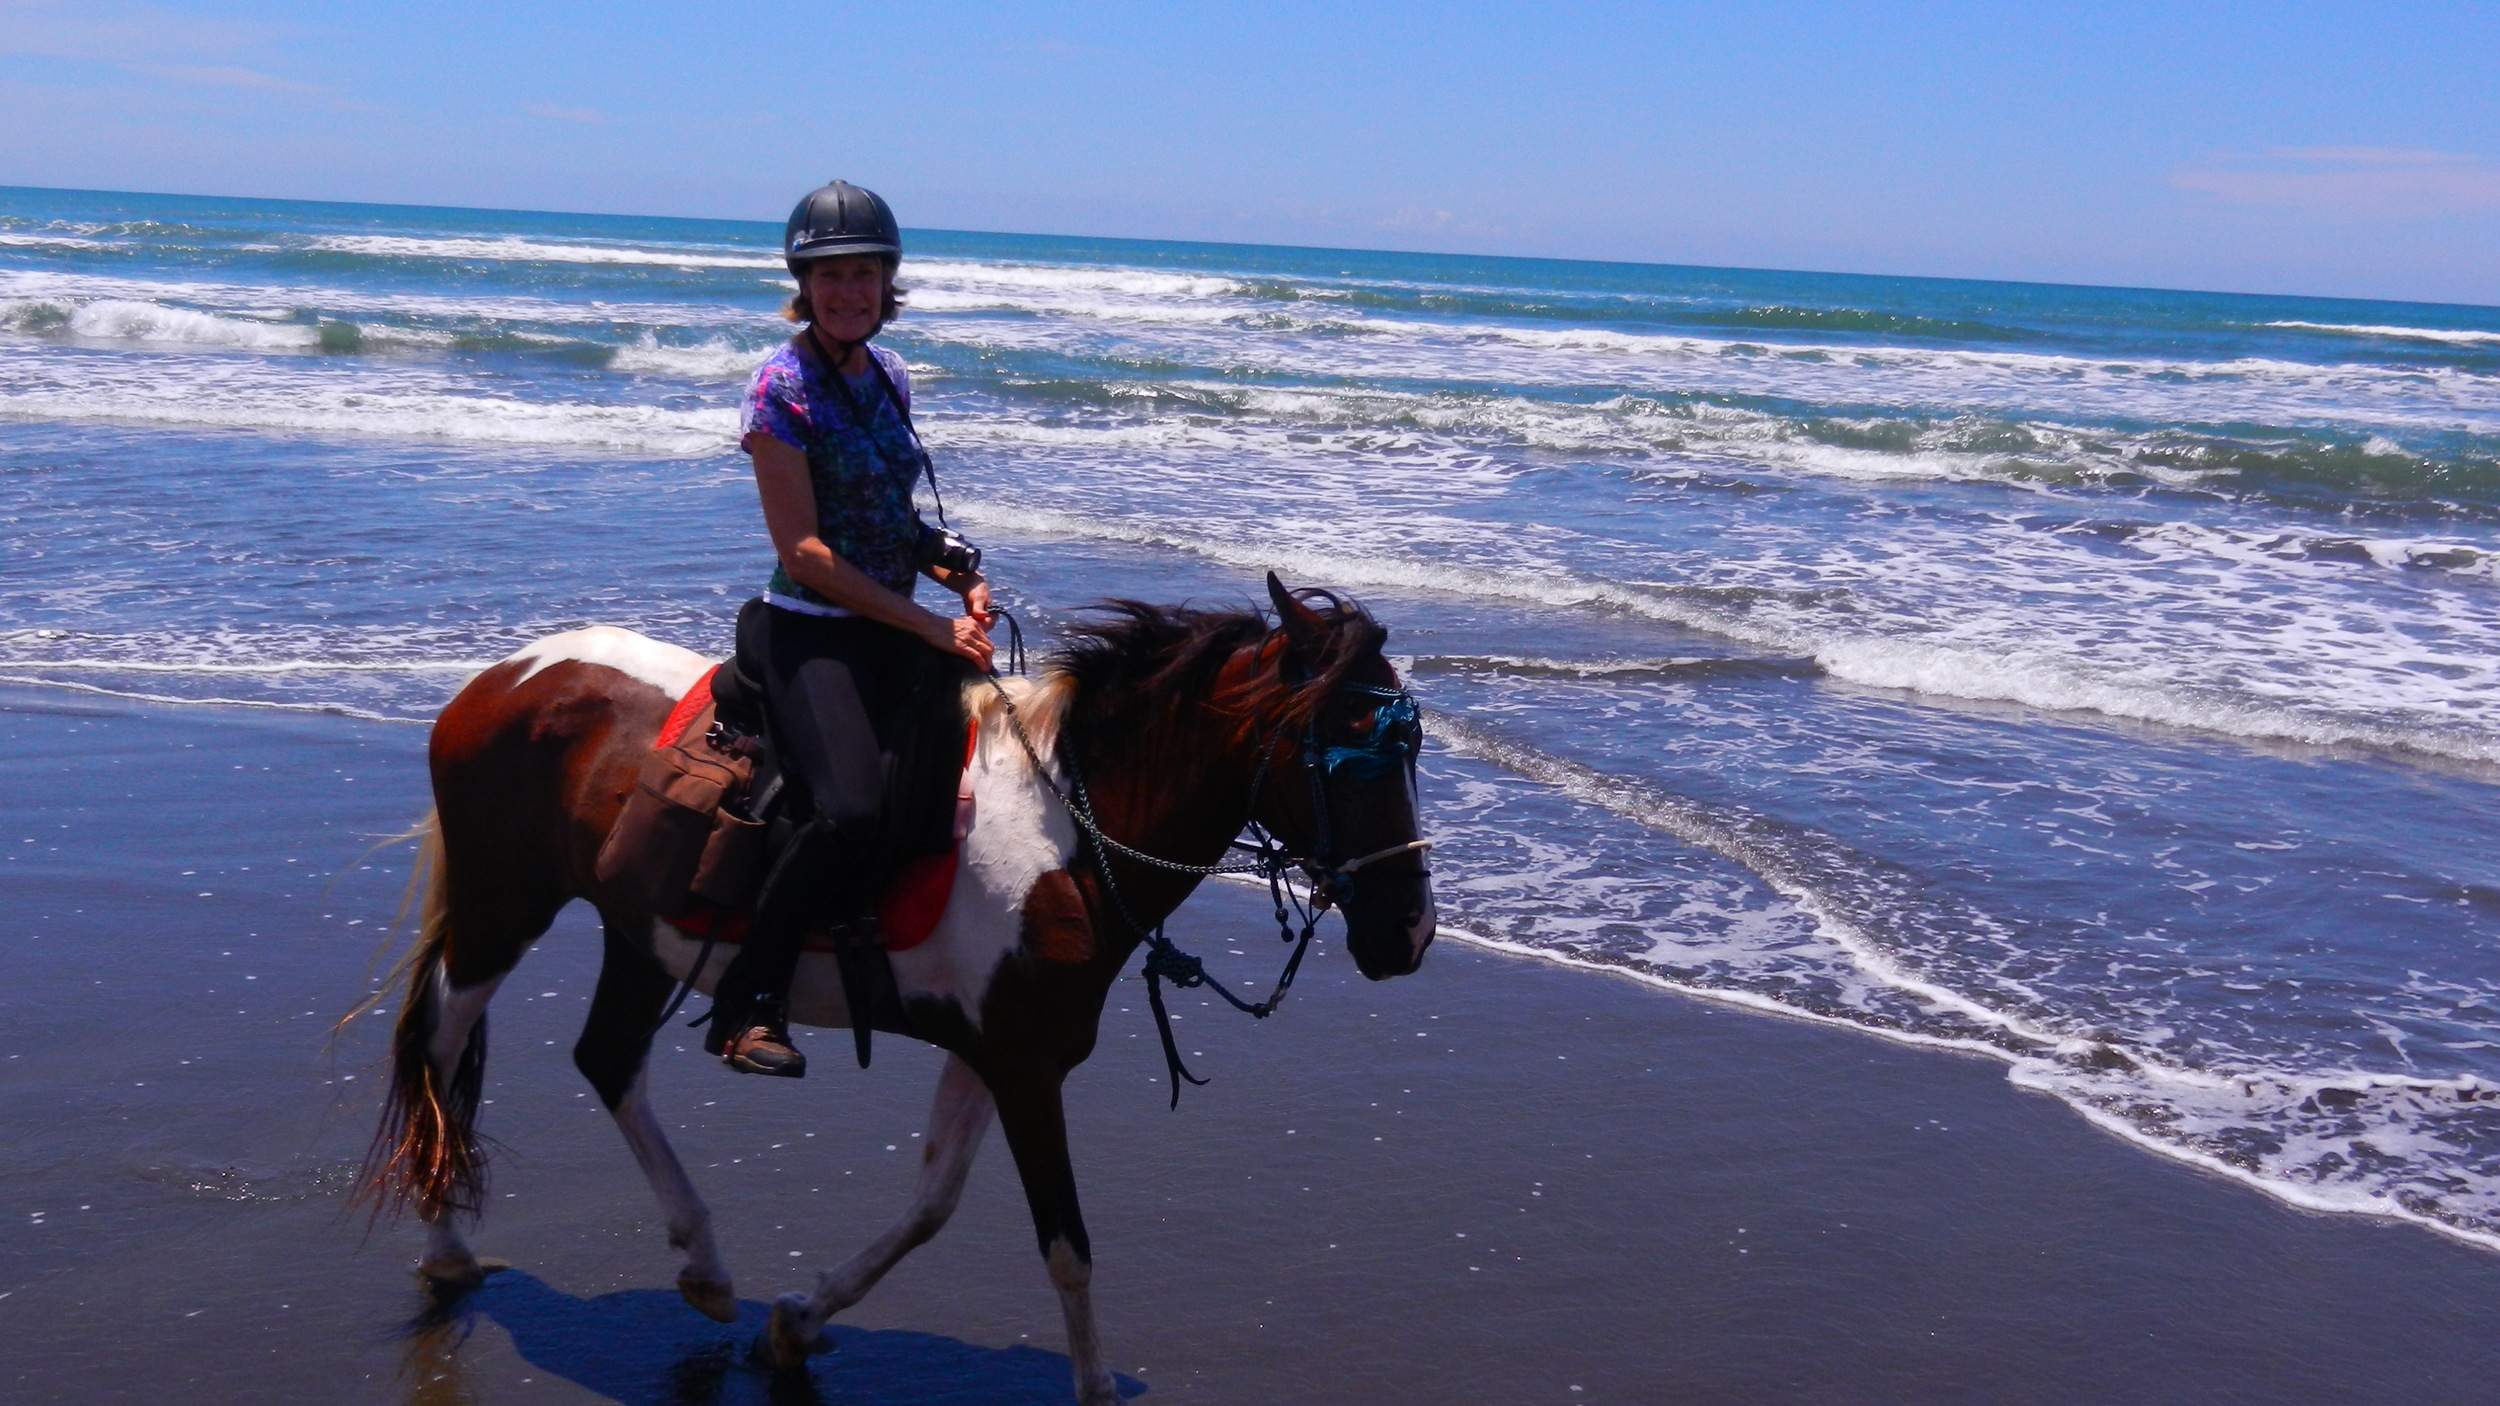 Horse riding on the beach Costa Rica